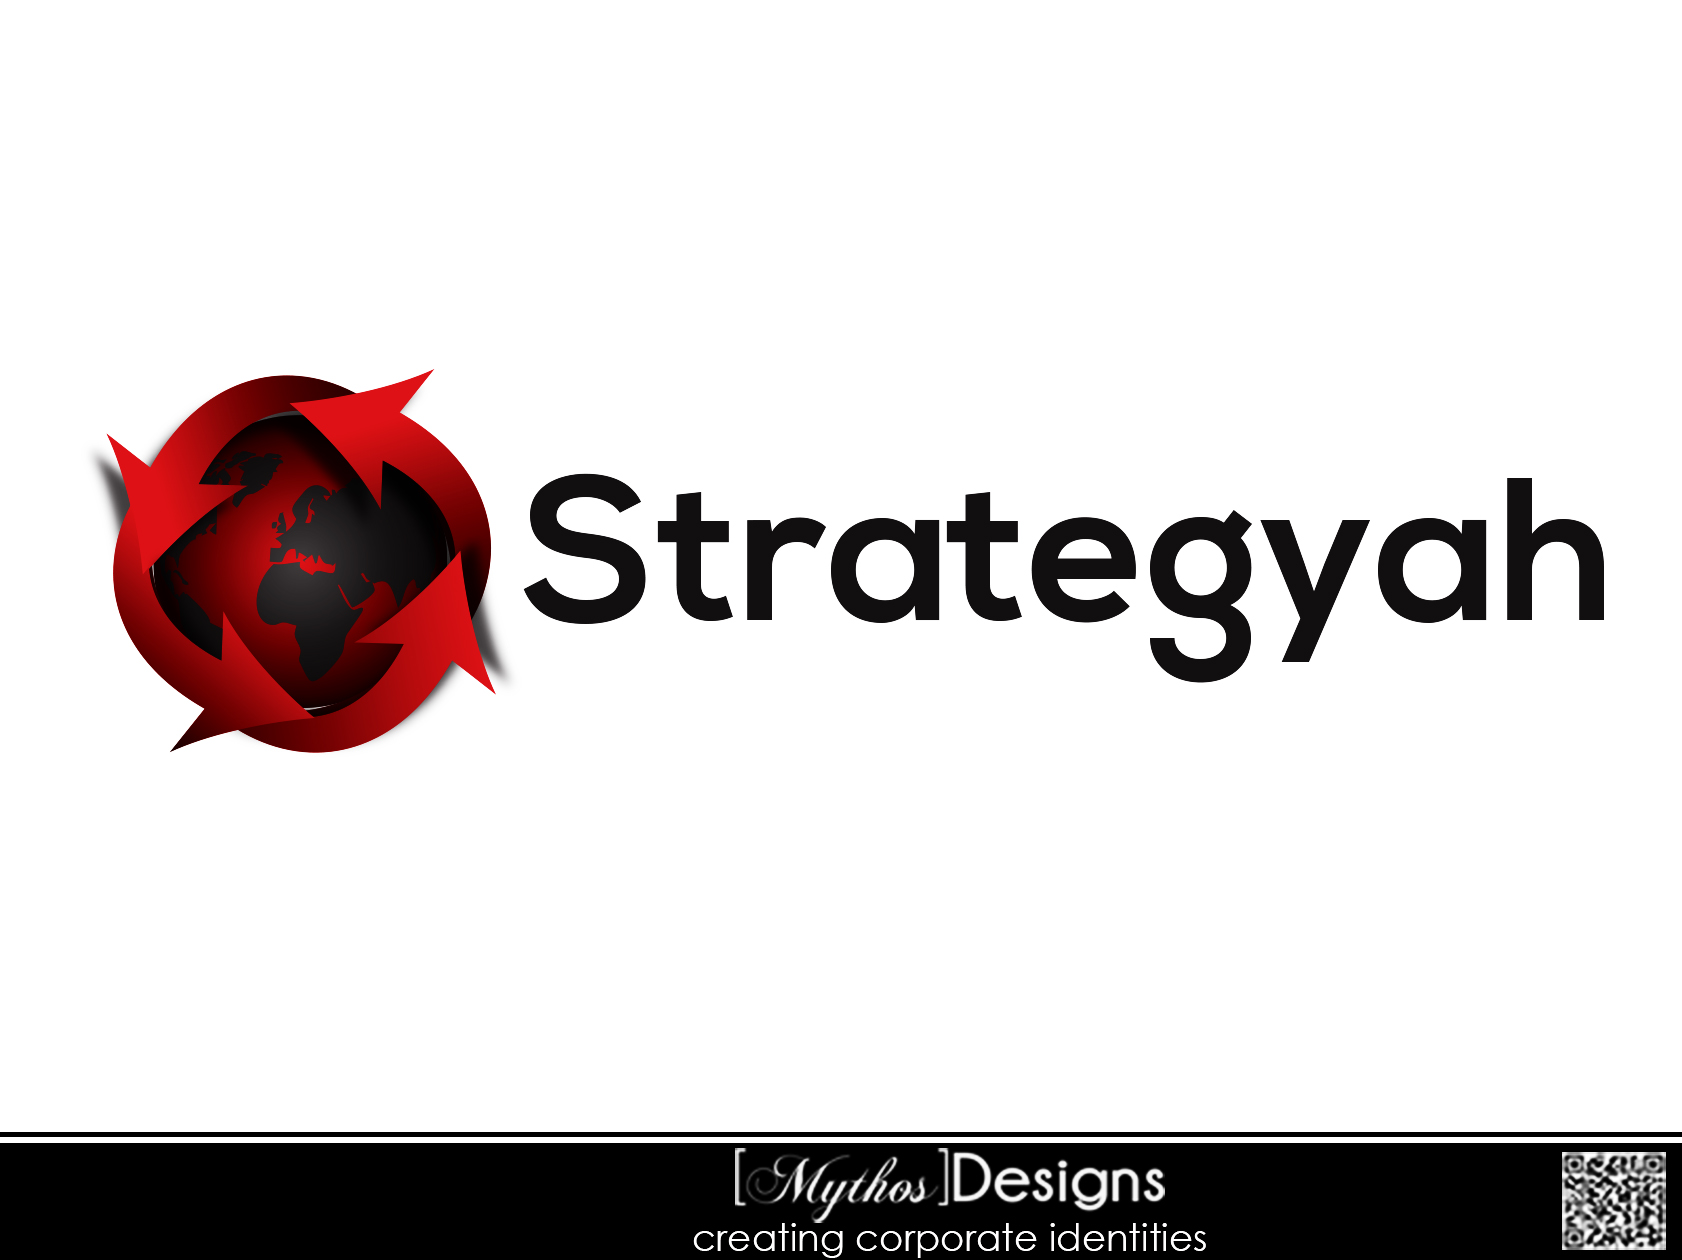 Logo Design by Mythos Designs - Entry No. 100 in the Logo Design Contest Creative Logo Design for Strategyah.